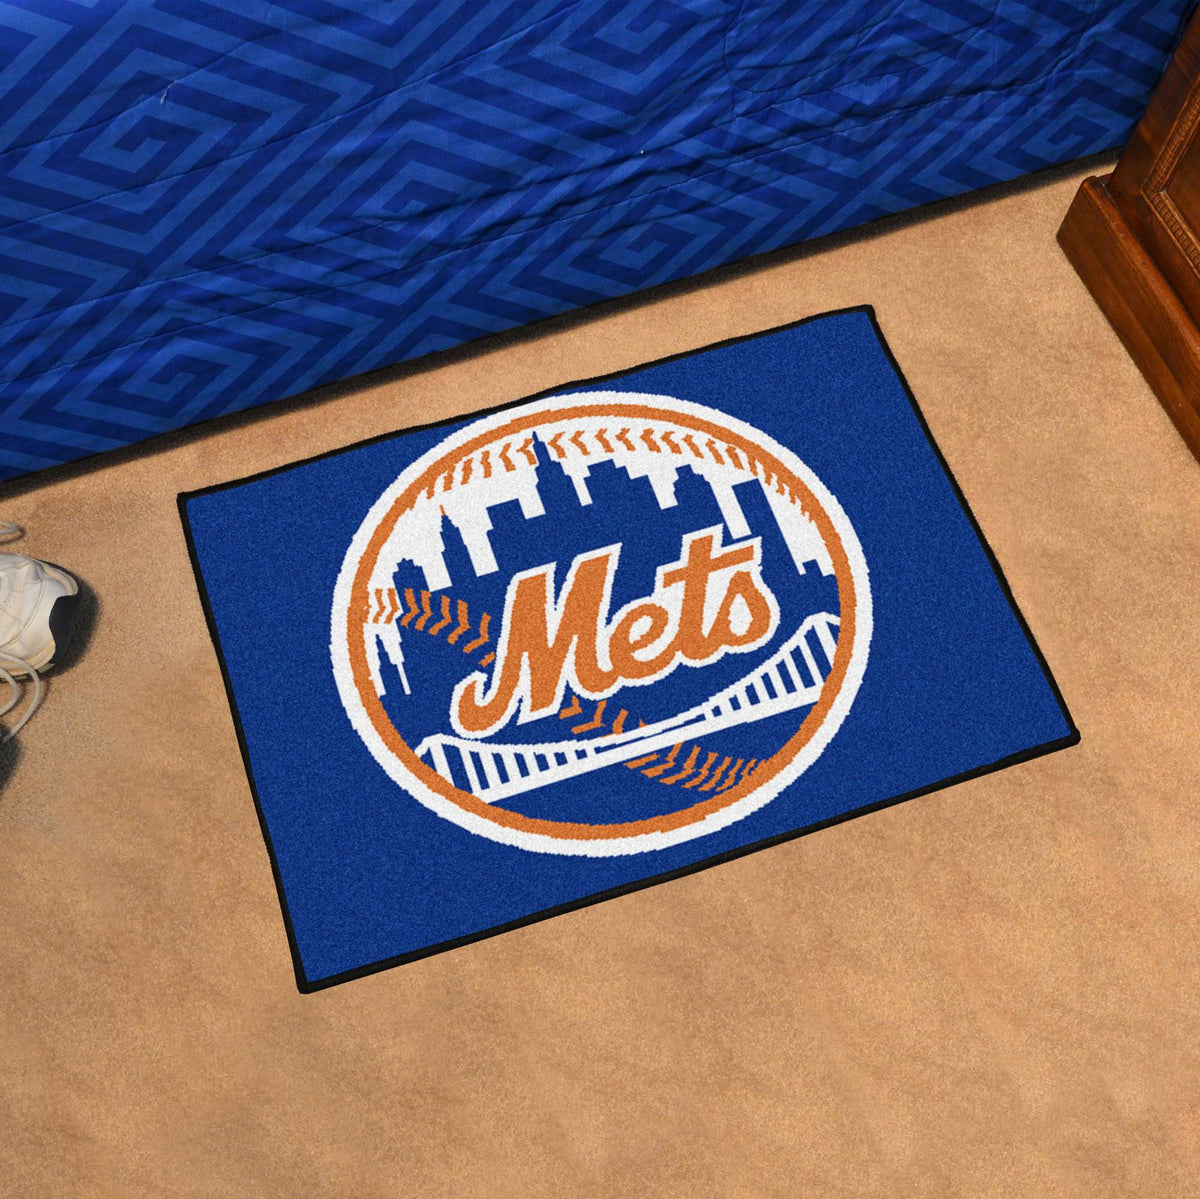 MLB - Starter Mat MLB Mats, Rectangular Mats, Starter Mat, MLB, Home Fan Mats New York Mets